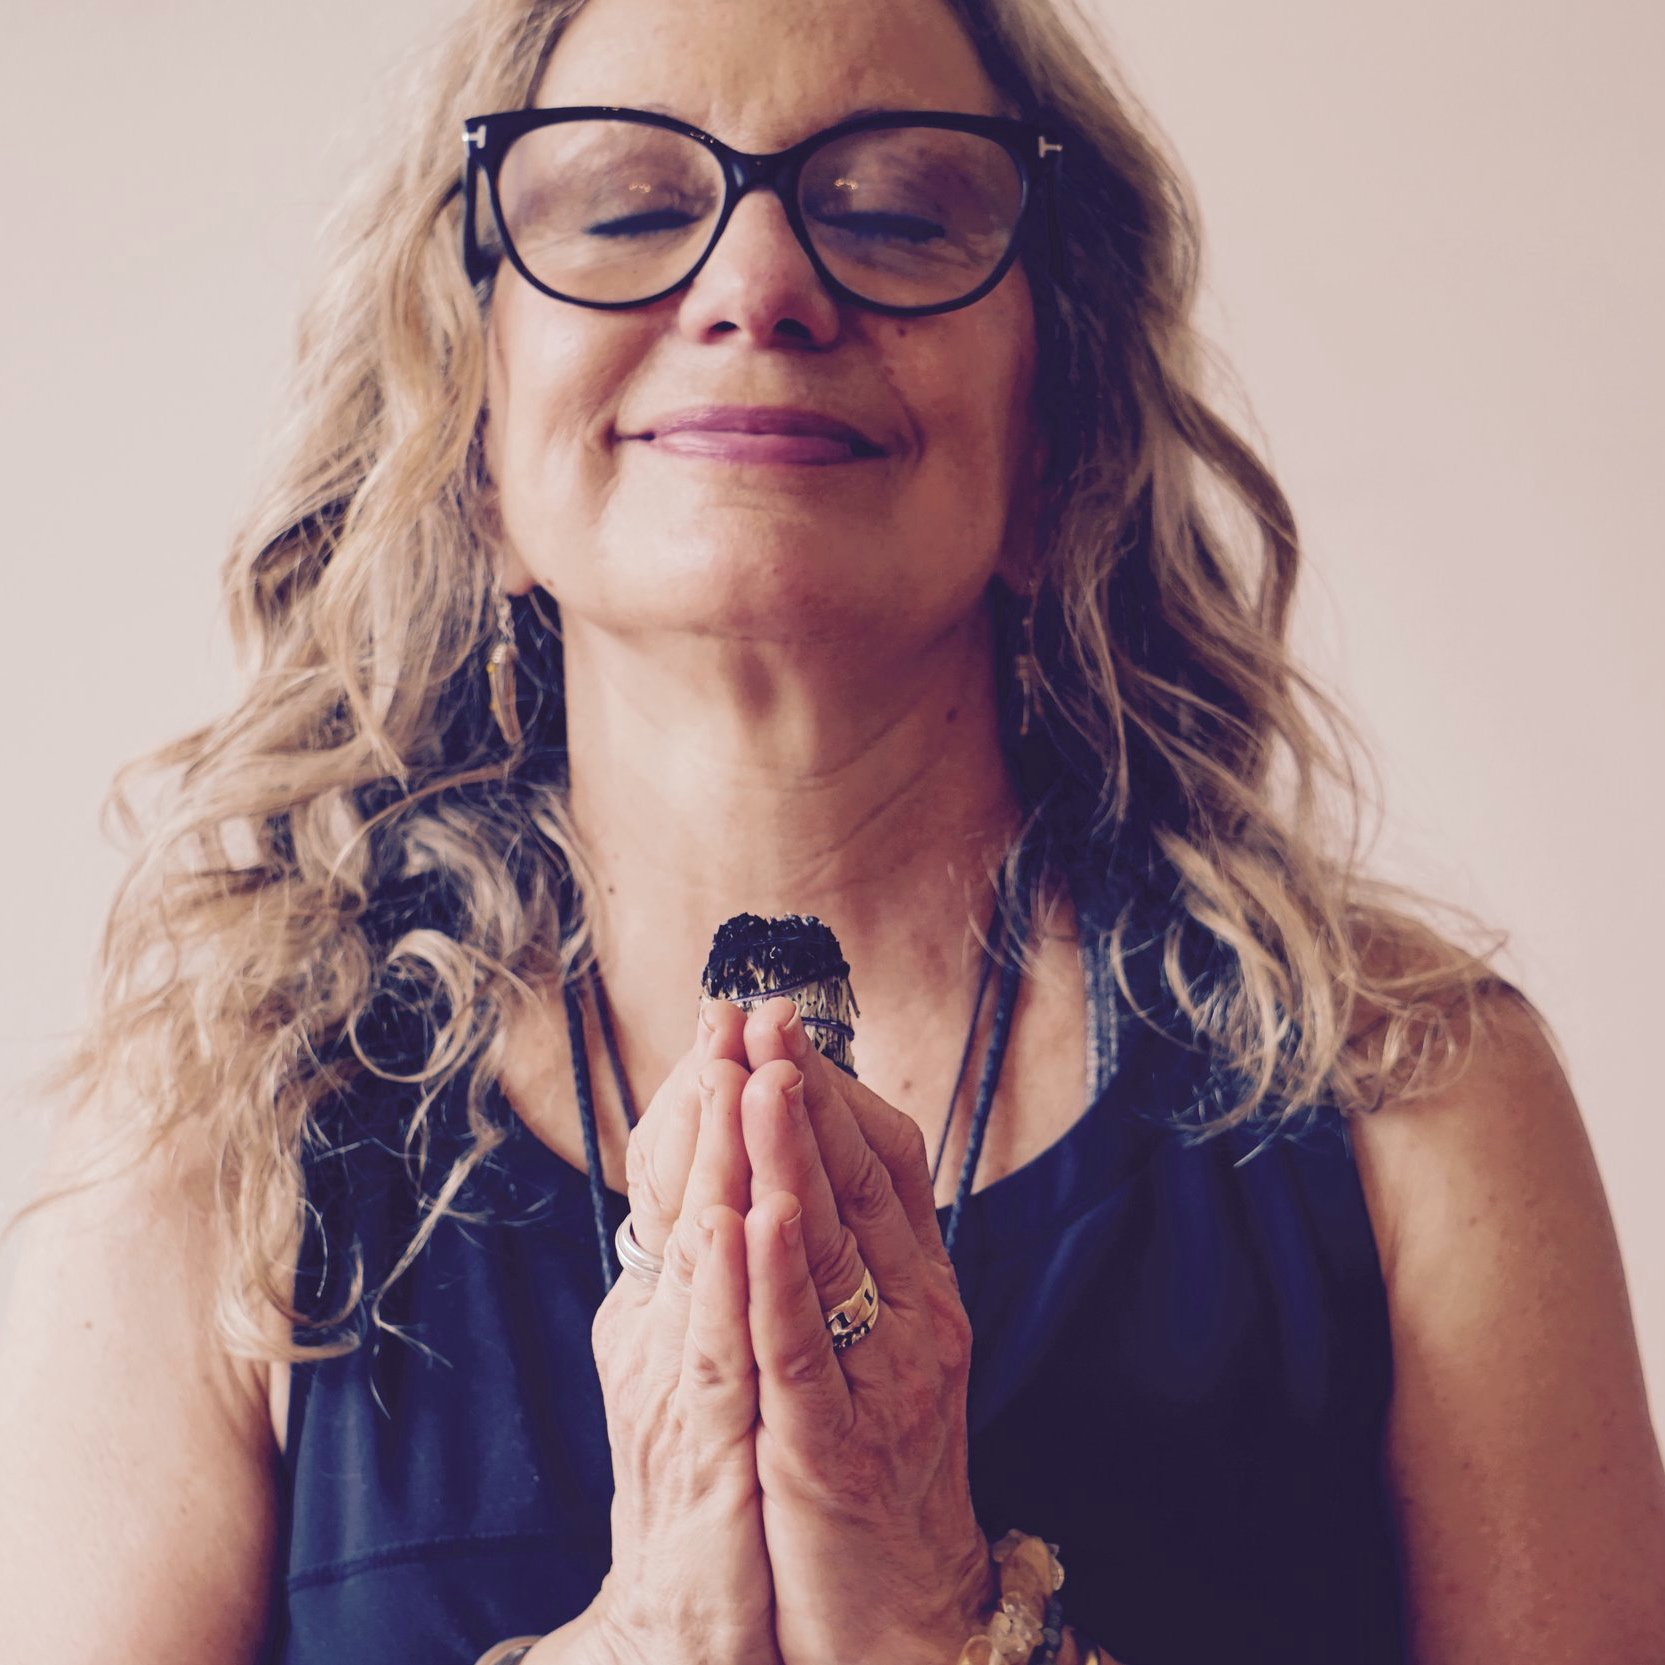 Restore and Relax - Yoga & Guided Meditation with Roey Ficaro- September 15